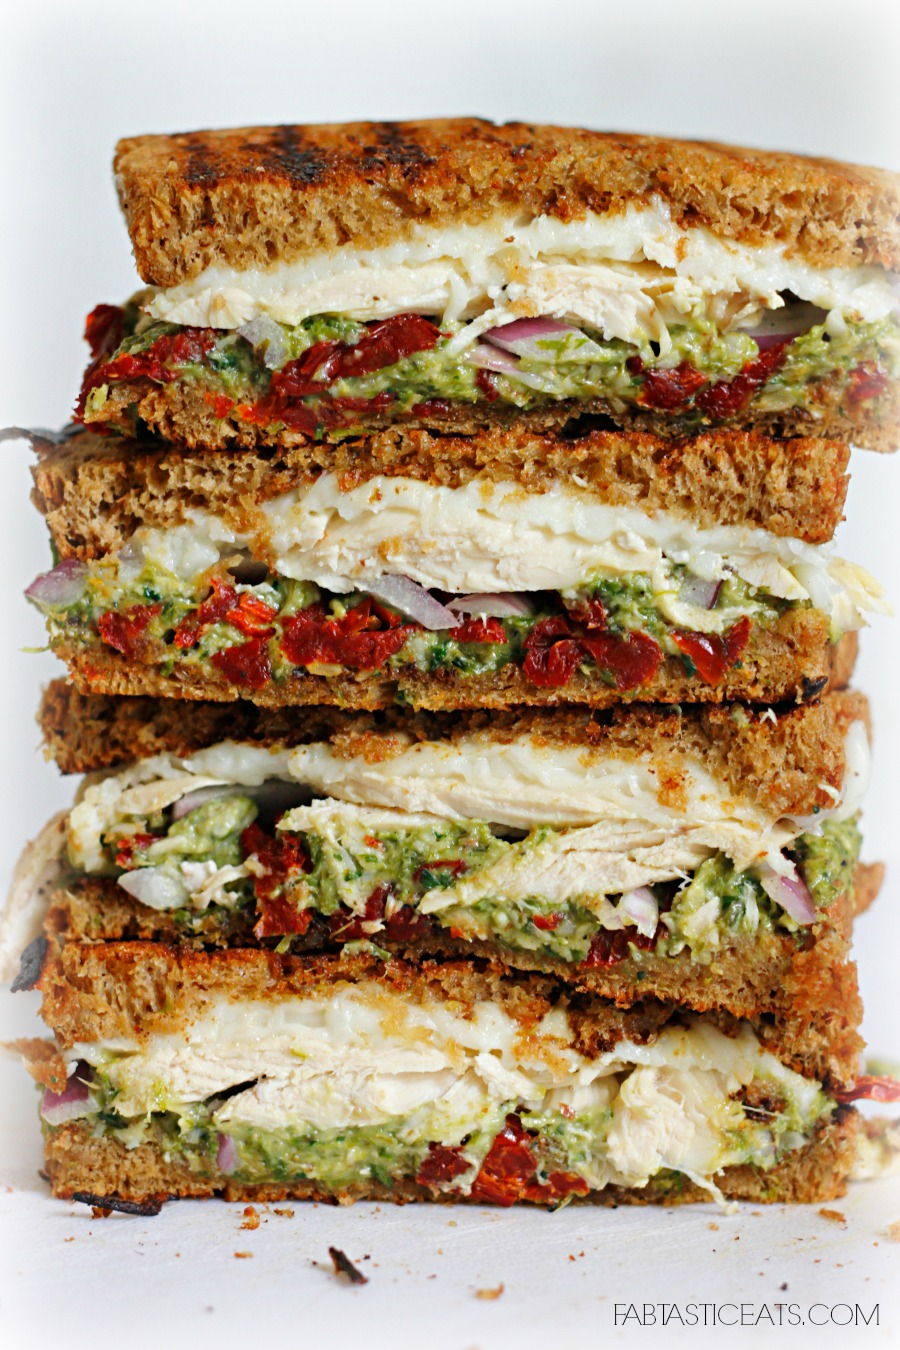 Chicken, Sun-dried Tomato, and Asparagus Pesto Sandwich